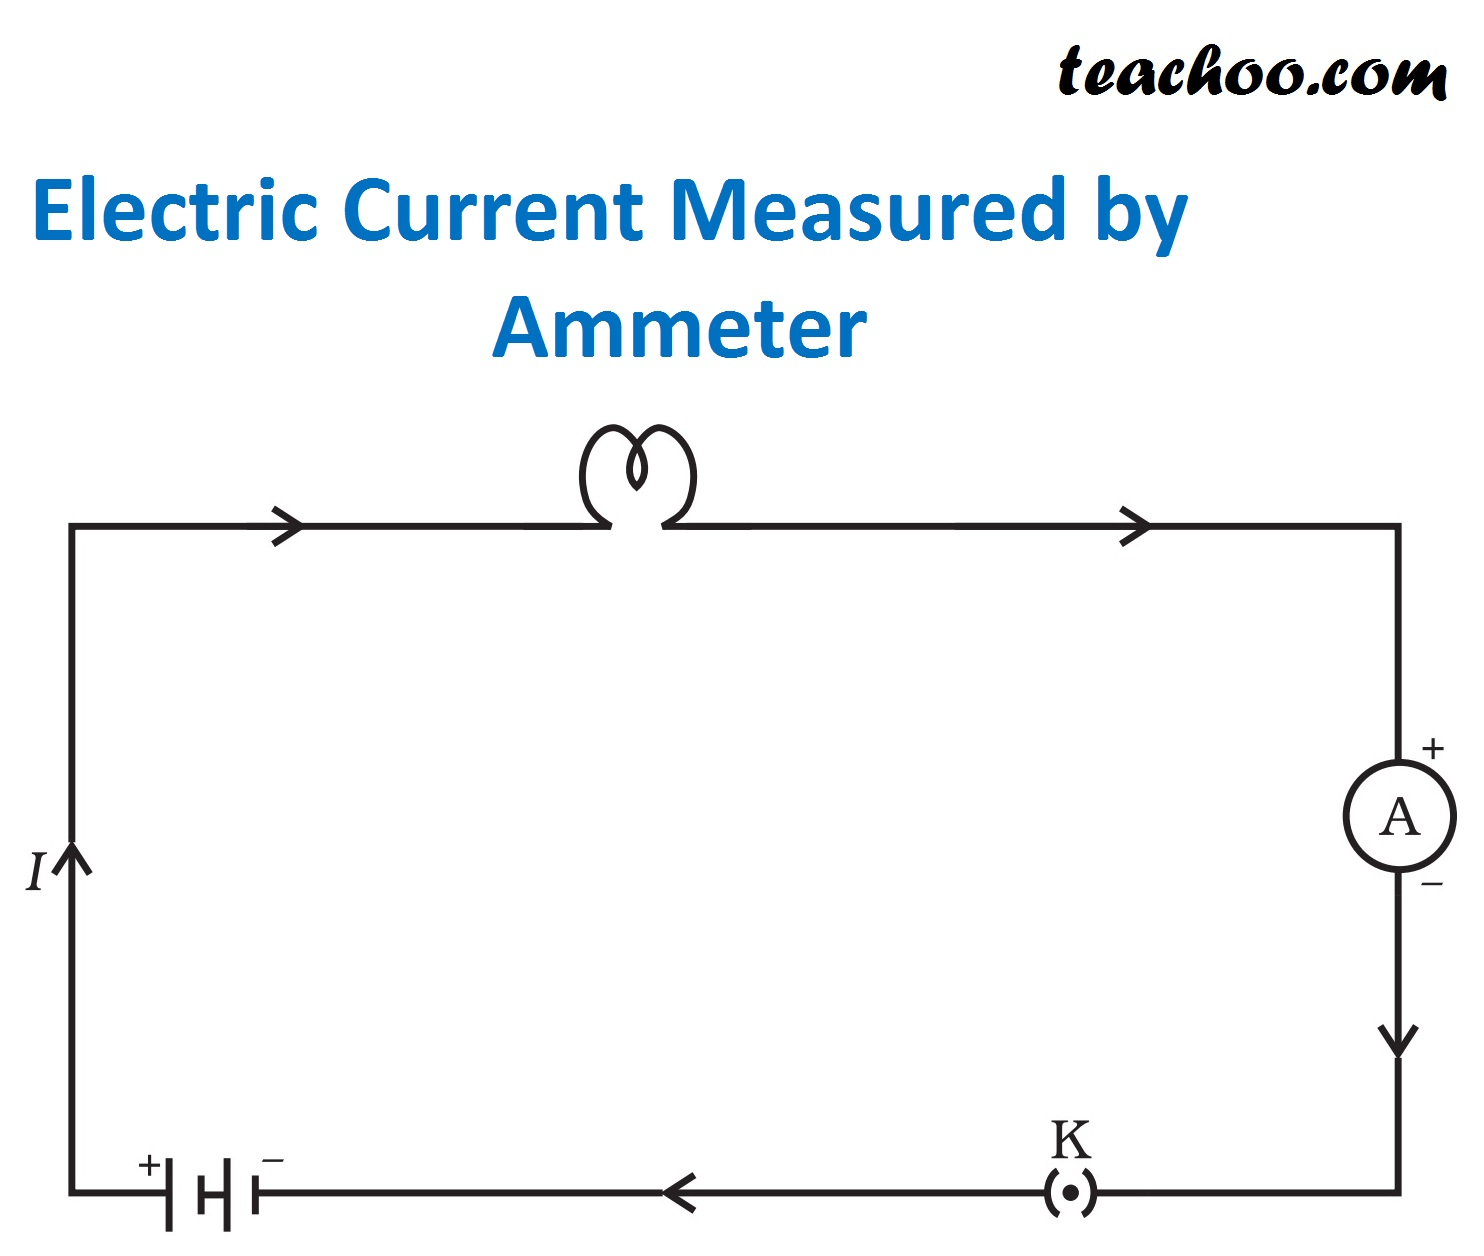 Electric Current Measured by Ammeter.jpg